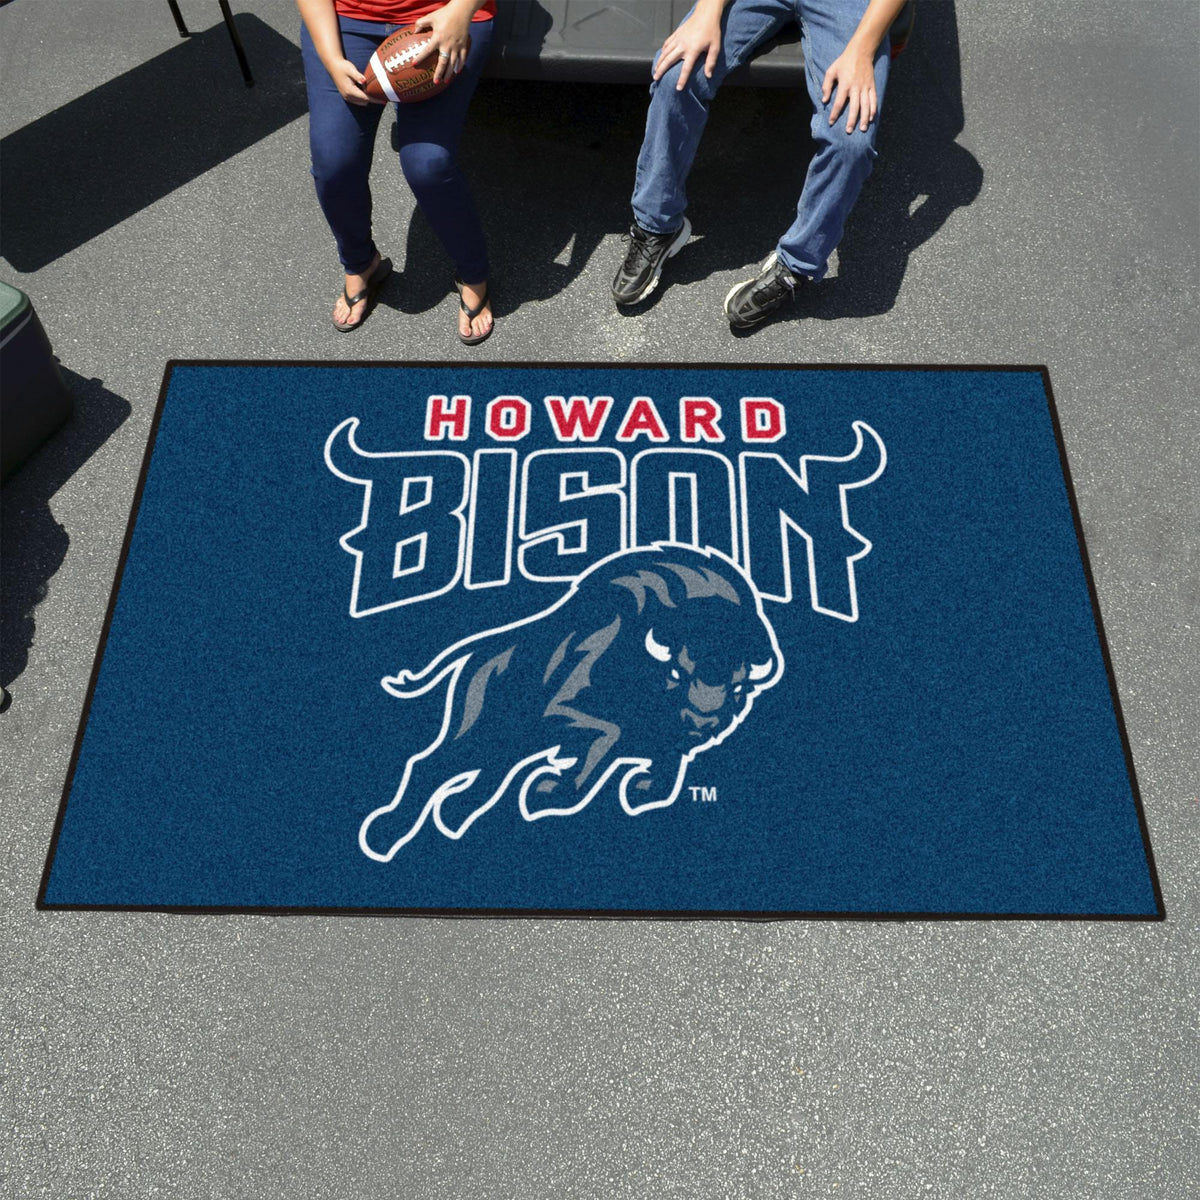 Collegiate - Ulti-Mat: A - L Collegiate Mats, Rectangular Mats, Ulti-Mat, Collegiate, Home Fan Mats Howard